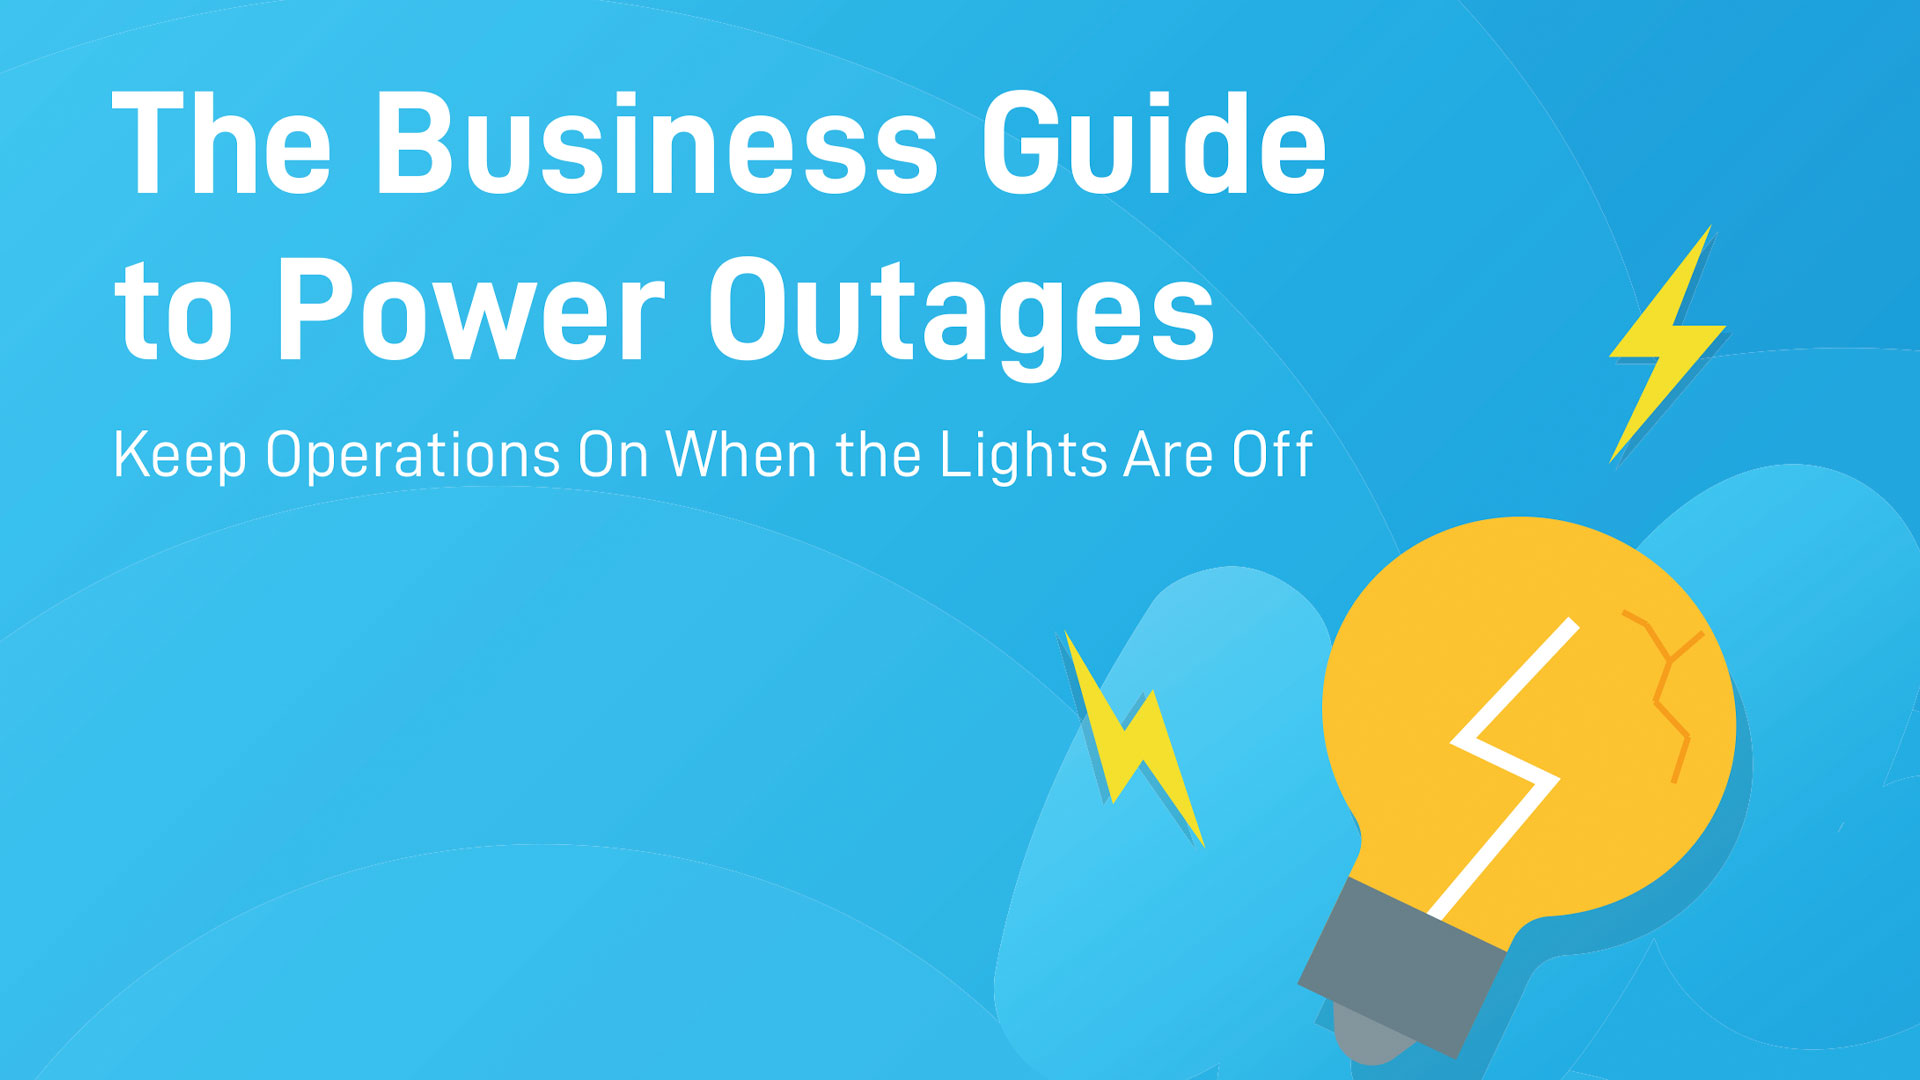 The Business Guid to Power Outages